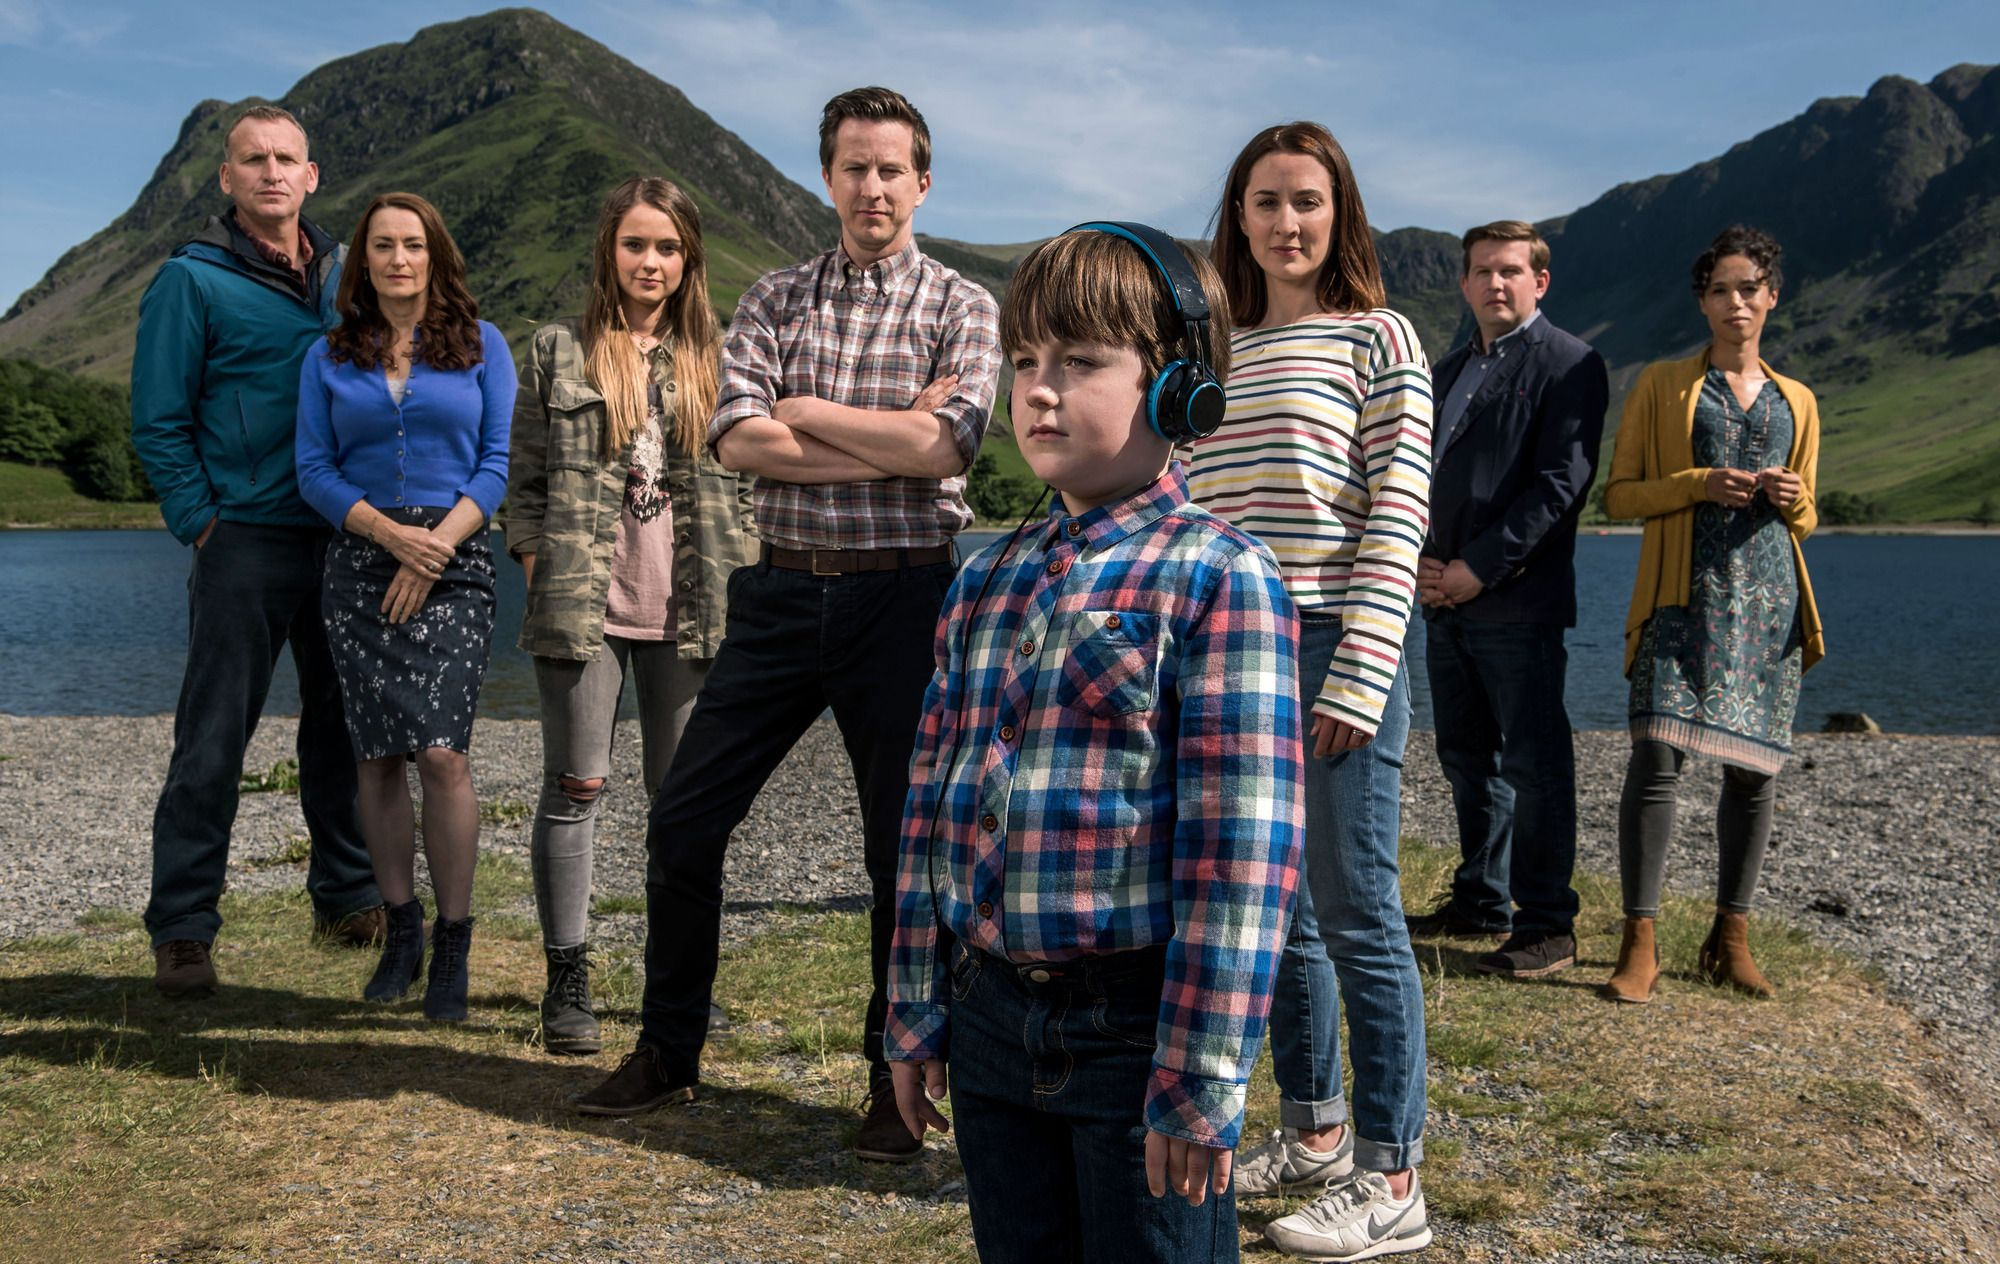 Programme Name: The A word S2 - TX: n/a - Episode: n/a (No. n/a) - Picture Shows:  Maurice Scott (CHRISTOPHER ECCLESTON), Louise Wilson (POOKY QUESNEL), Rebecca Hughes (MOLLY WRIGHT), Paul Hughes (LEE INGLEBY), Joe Hughes (MAX VENTO), Alison Hughes (MORVEN CHRISTIE), Edwin (Eddie) Scott (GREG MCHUGH), Nicola Daniels (VINETTE ROBINSON) - (C) Fifty Fathoms - Photographer: various